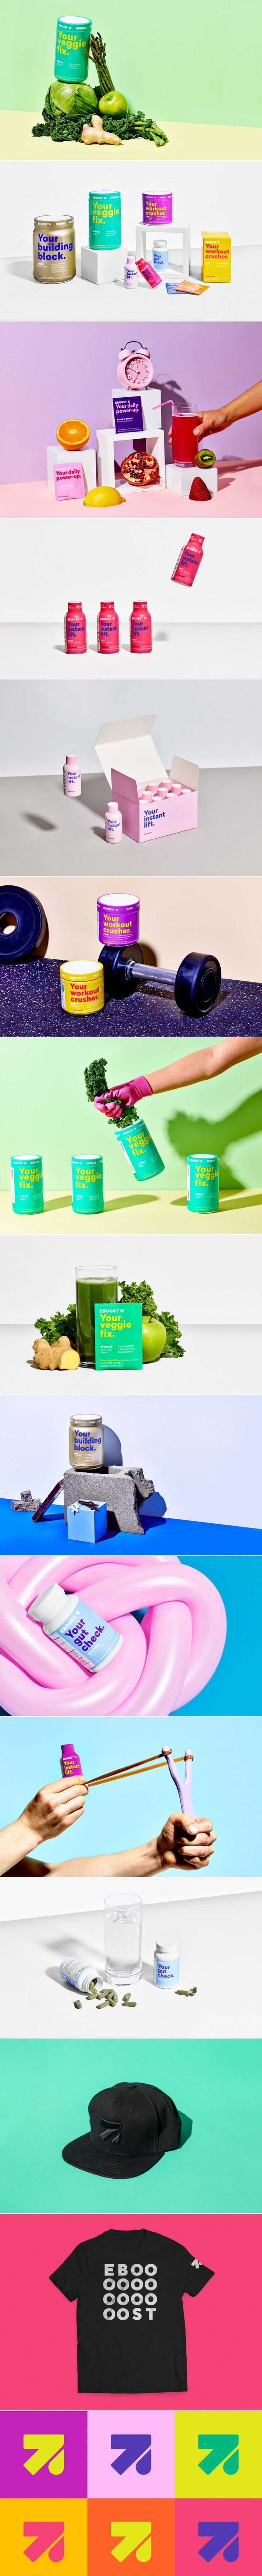 "Get a ""Boost"" With These Colorful Protein Products — The Dieline 